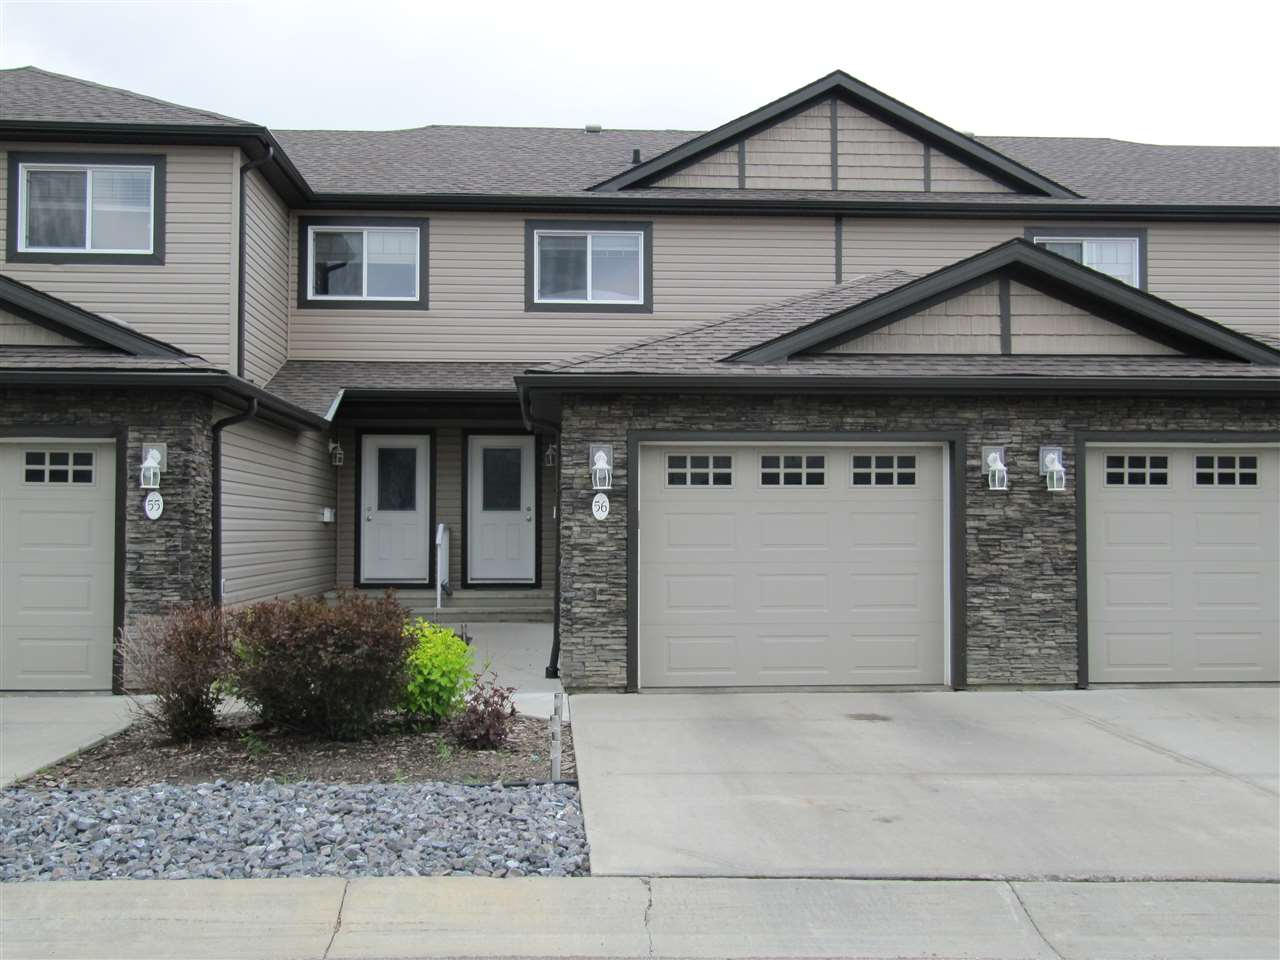 MLS® listing #E4163014 for sale located at #56 2005 70 Street